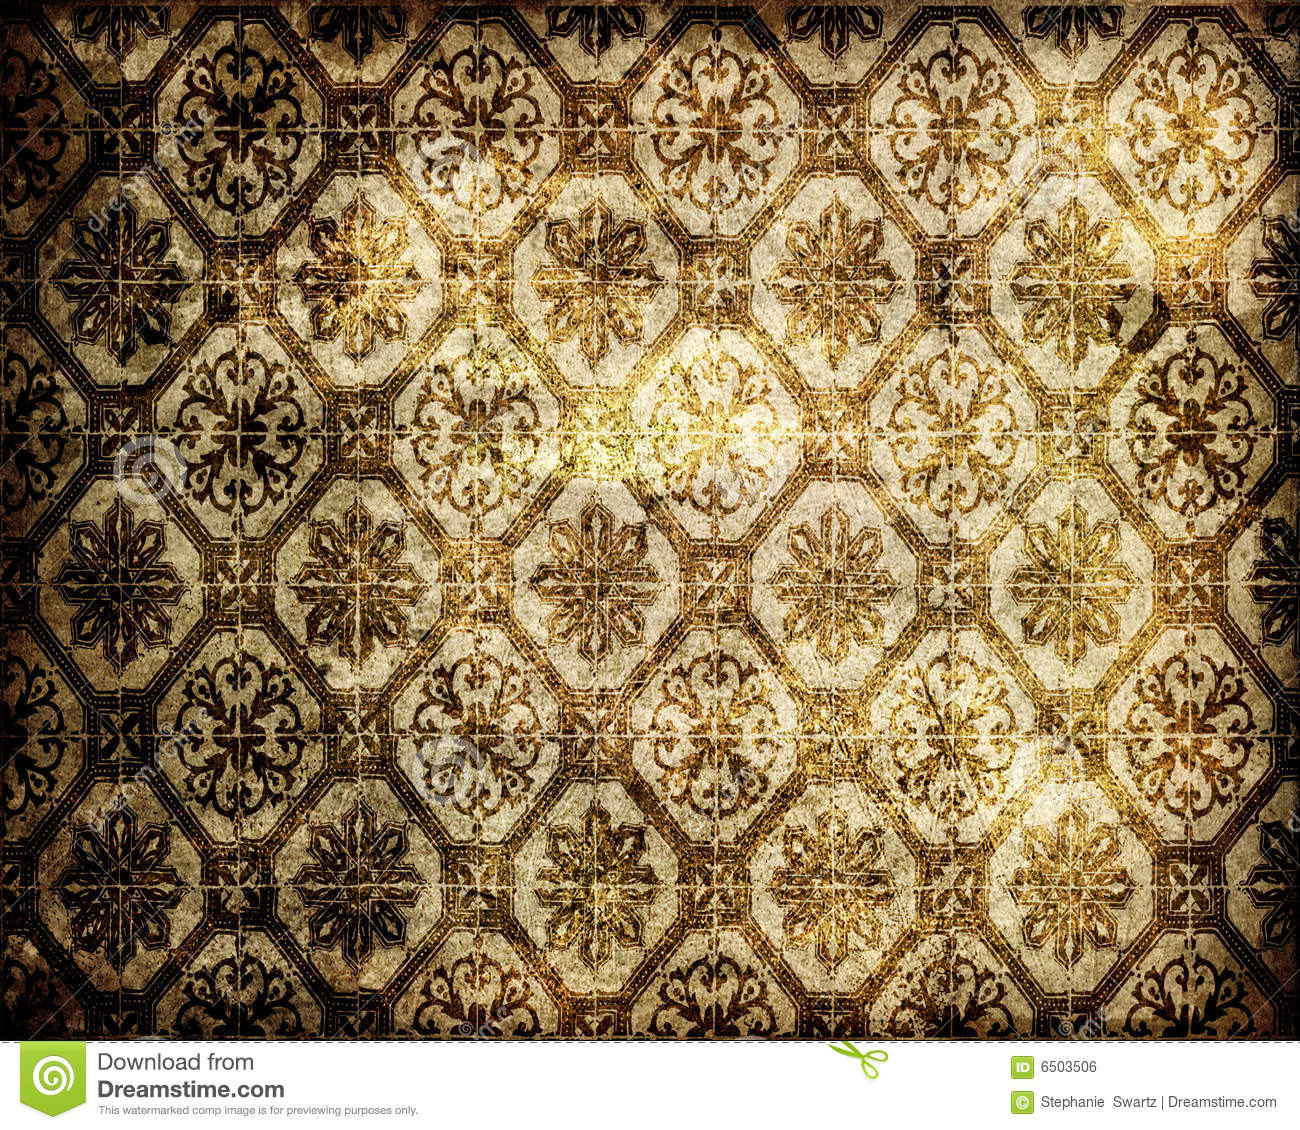 Download Victorian Dolls House Wallpaper Gallery: Grungy Victorian Wallpaper Royalty Free Stock Image